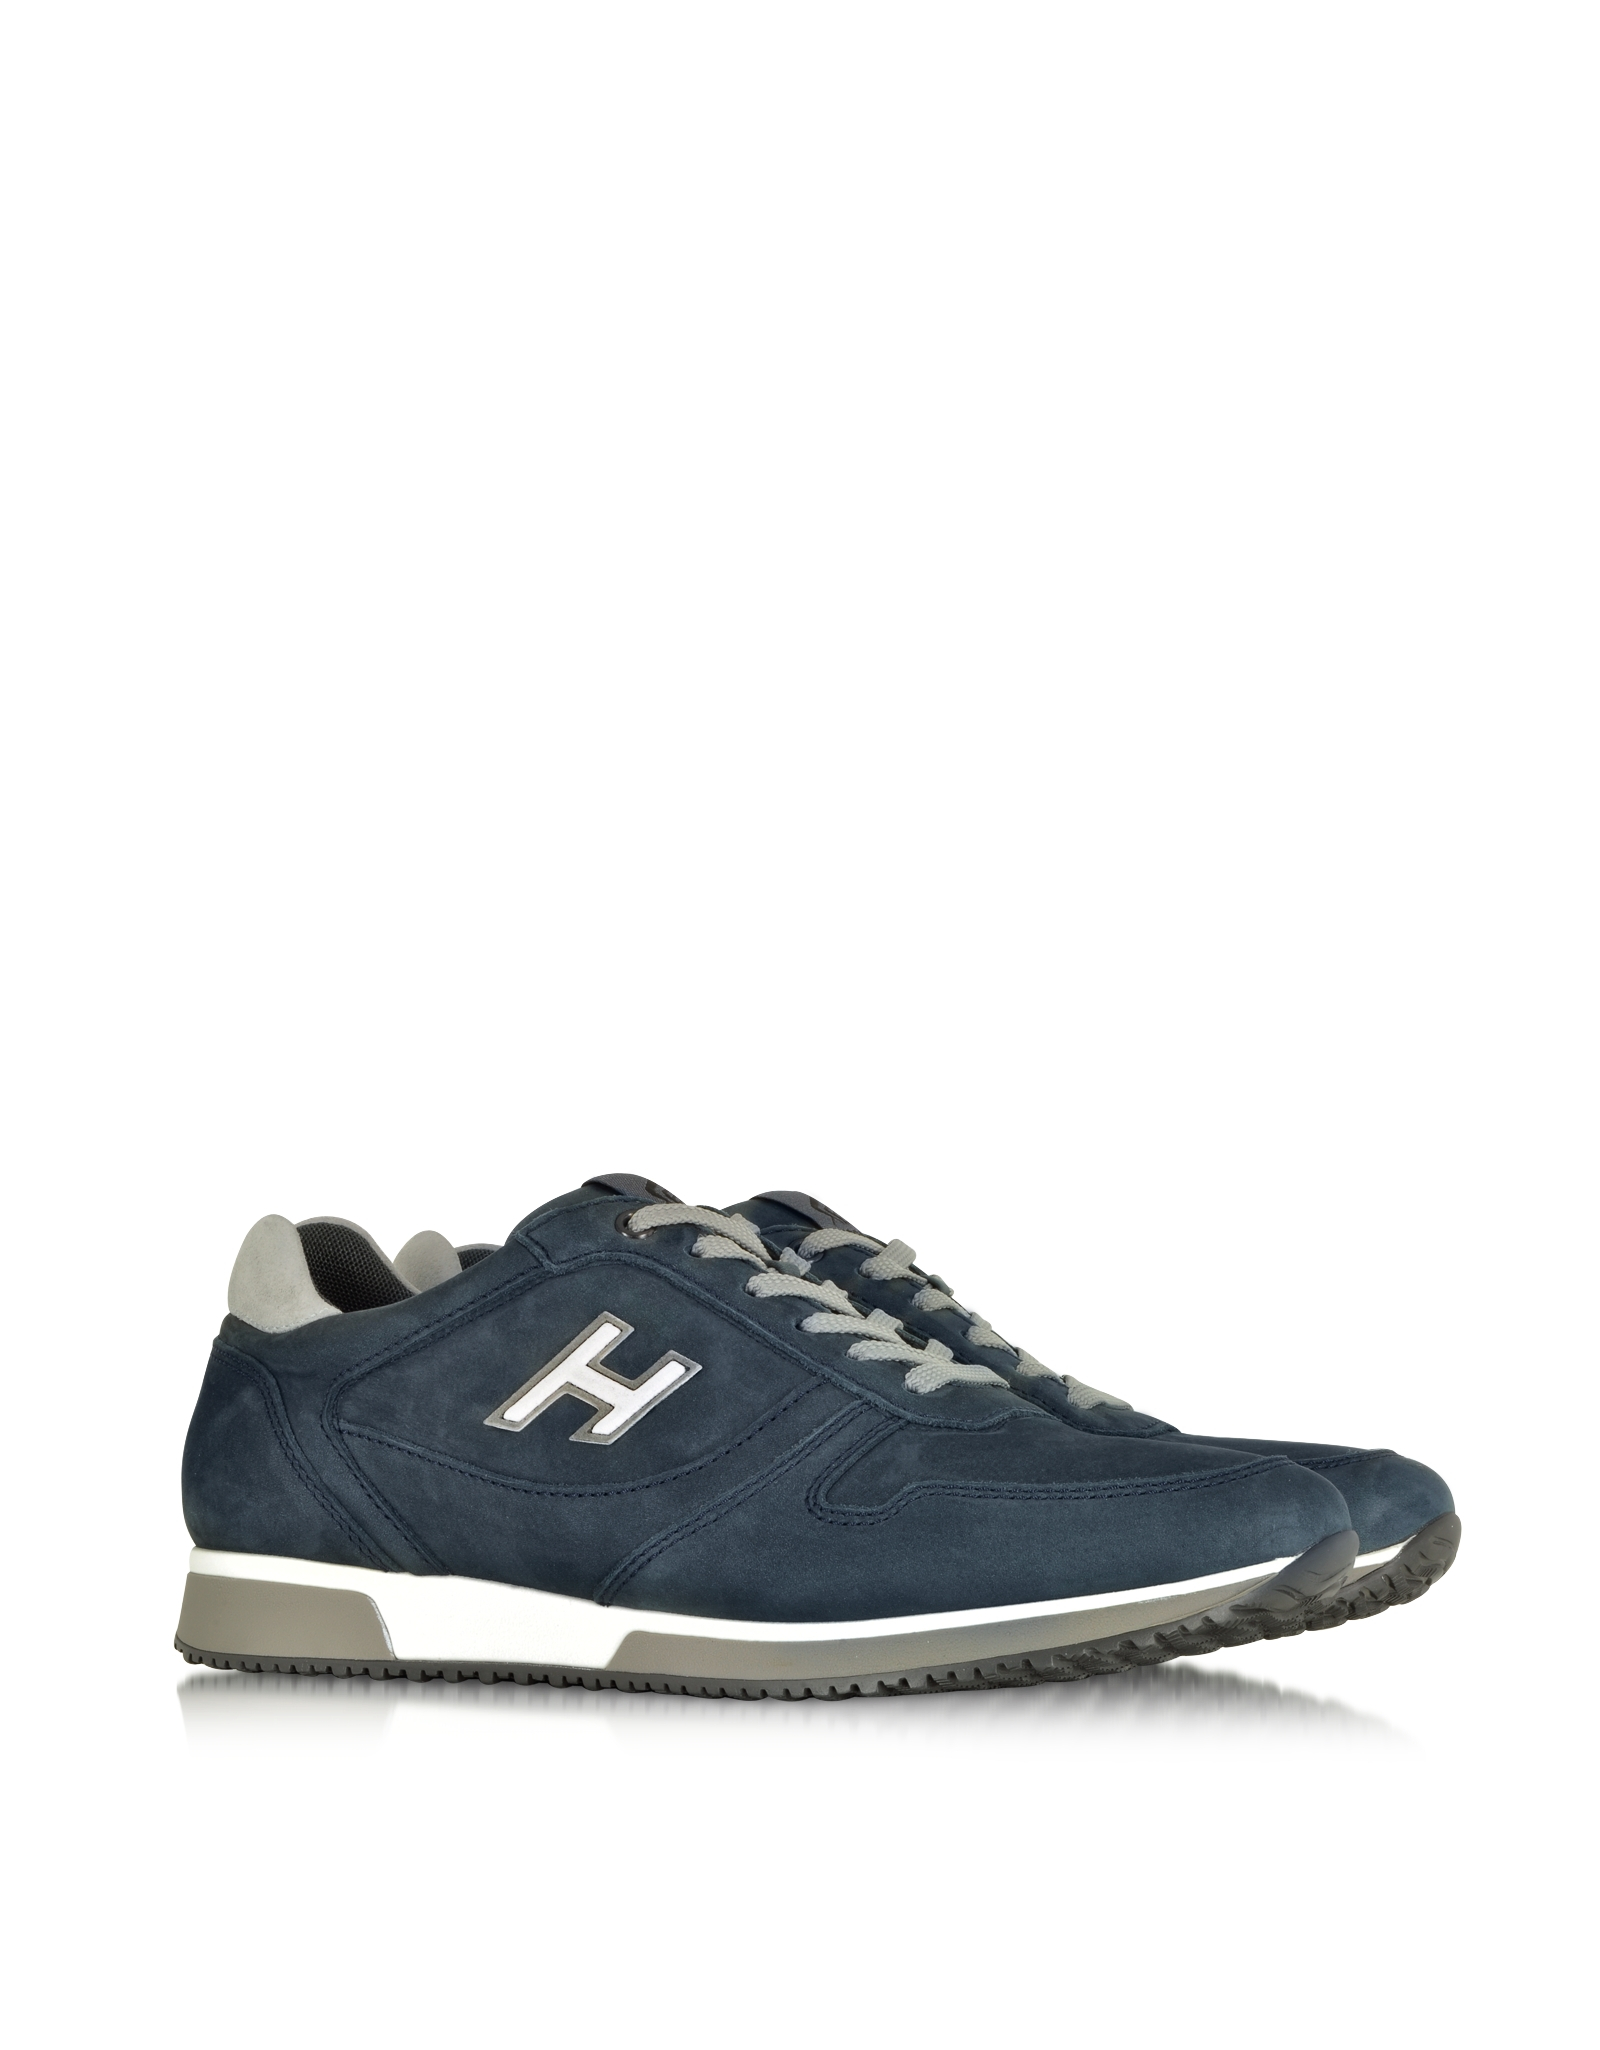 hogan h198 slash h flock sneaker in blue lyst. Black Bedroom Furniture Sets. Home Design Ideas